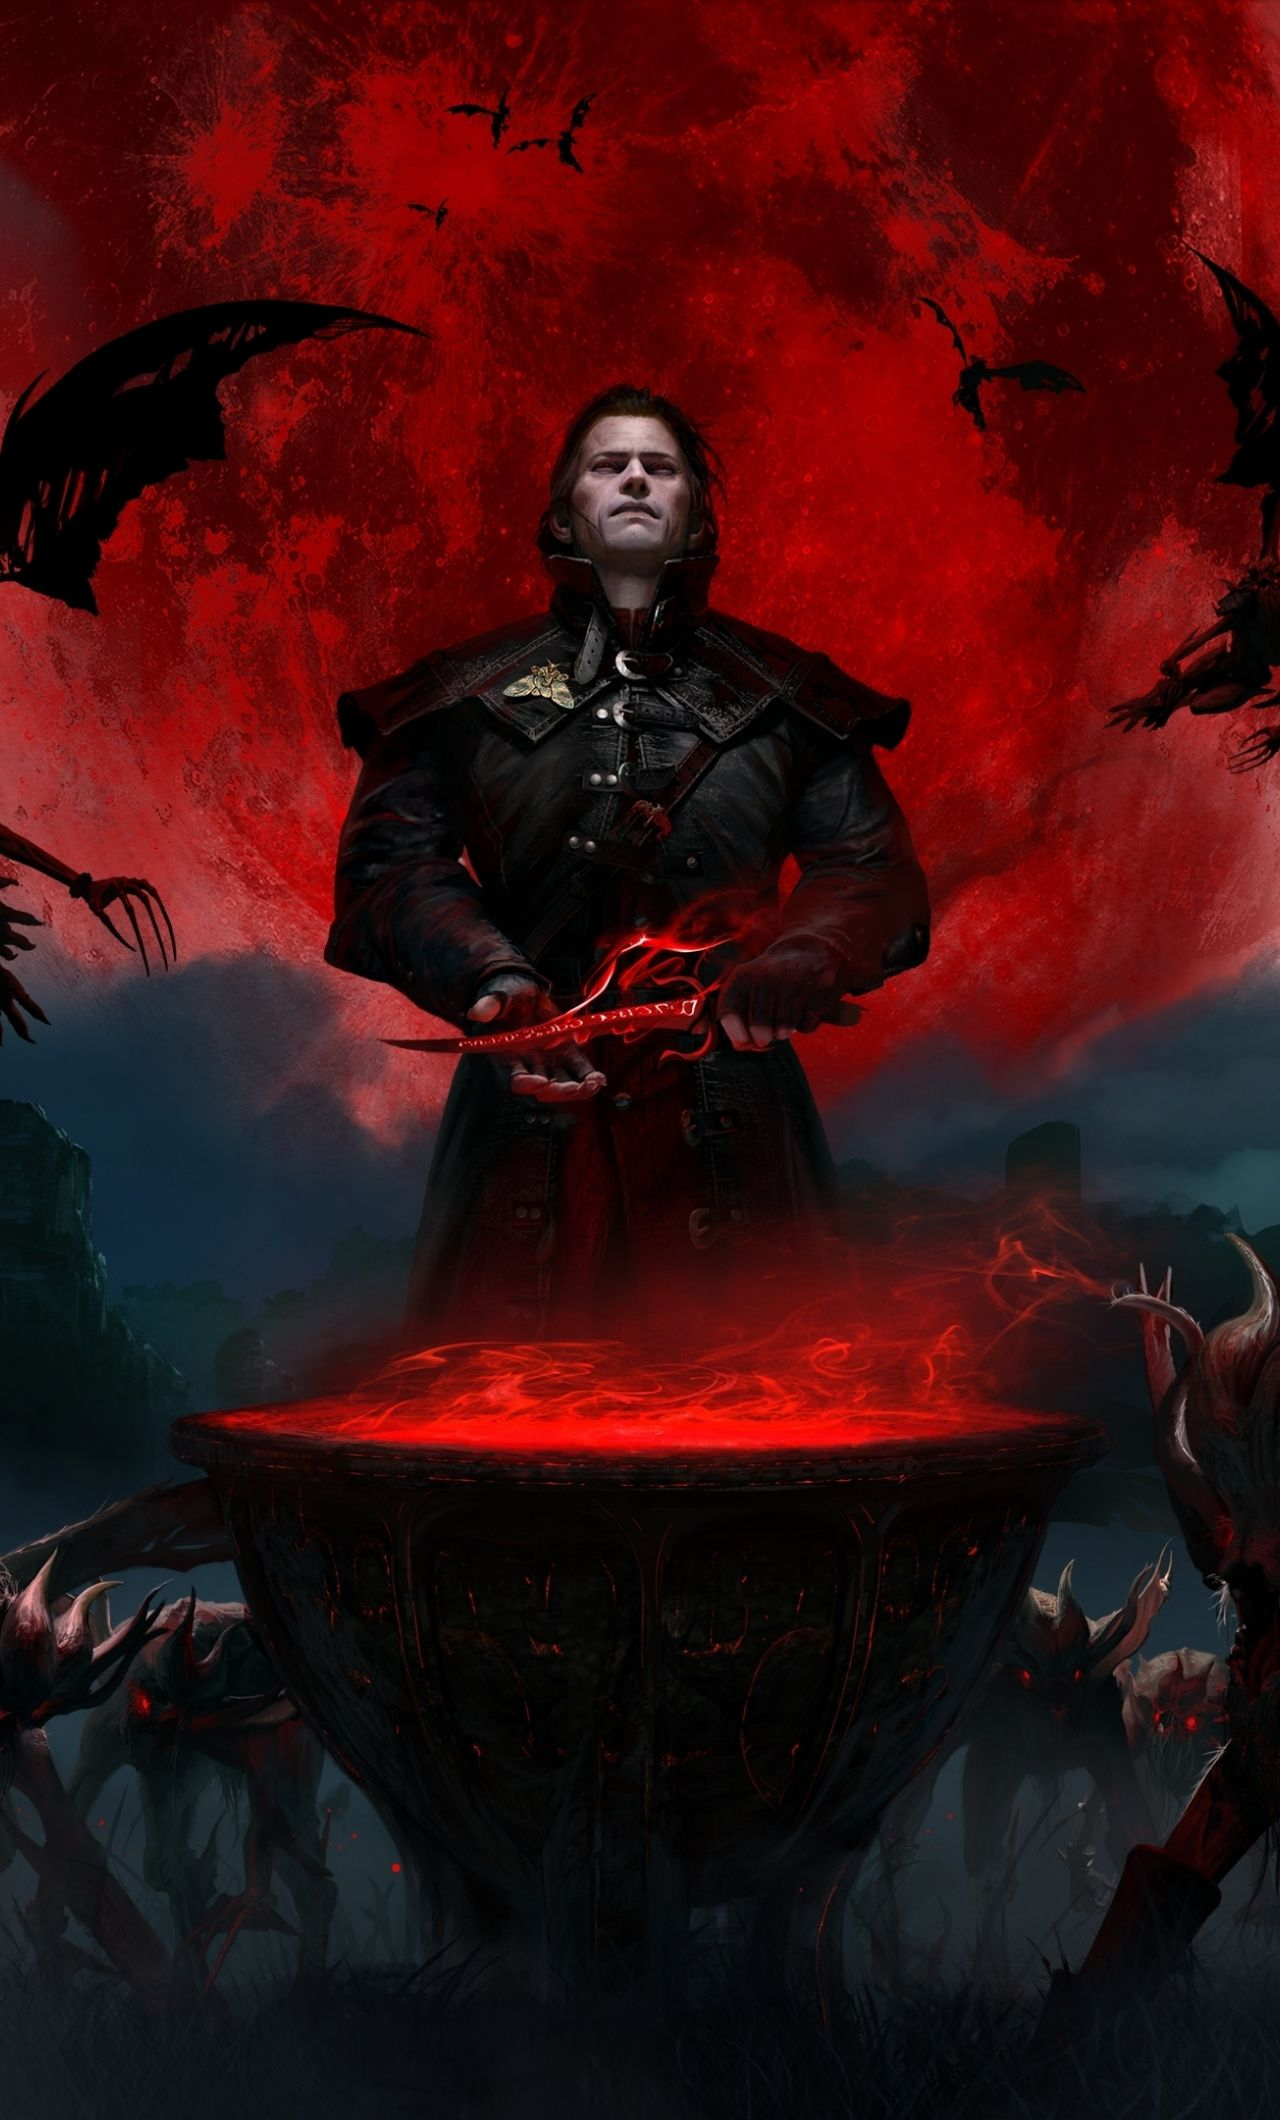 1280x2120 2019 Red Moon And Monsters Gwent The Witcher Card Game Video Game Wallpaper The Witcher Witcher Art Witcher Monsters